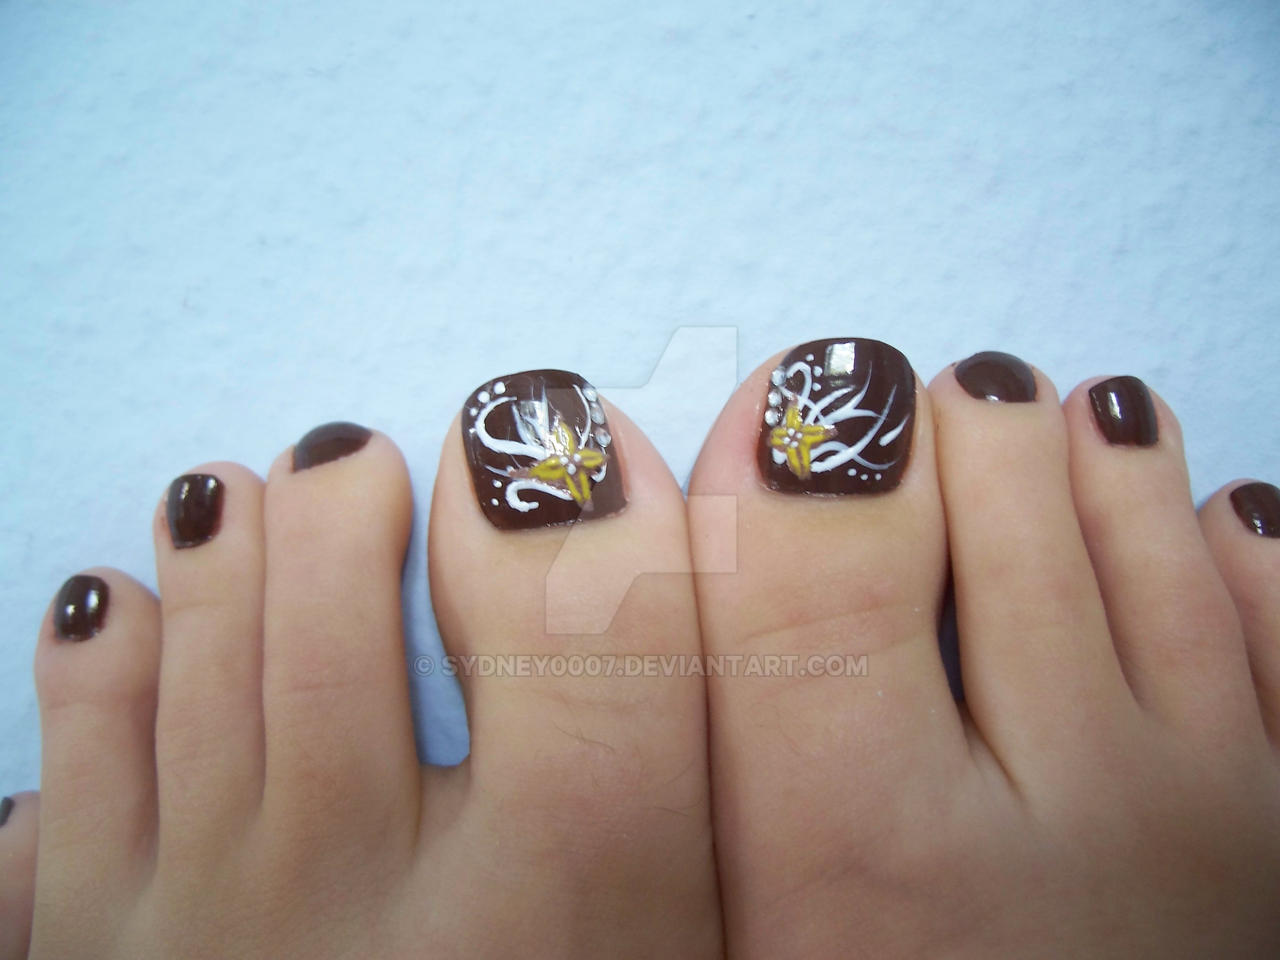 Brown toes by Sydney0007